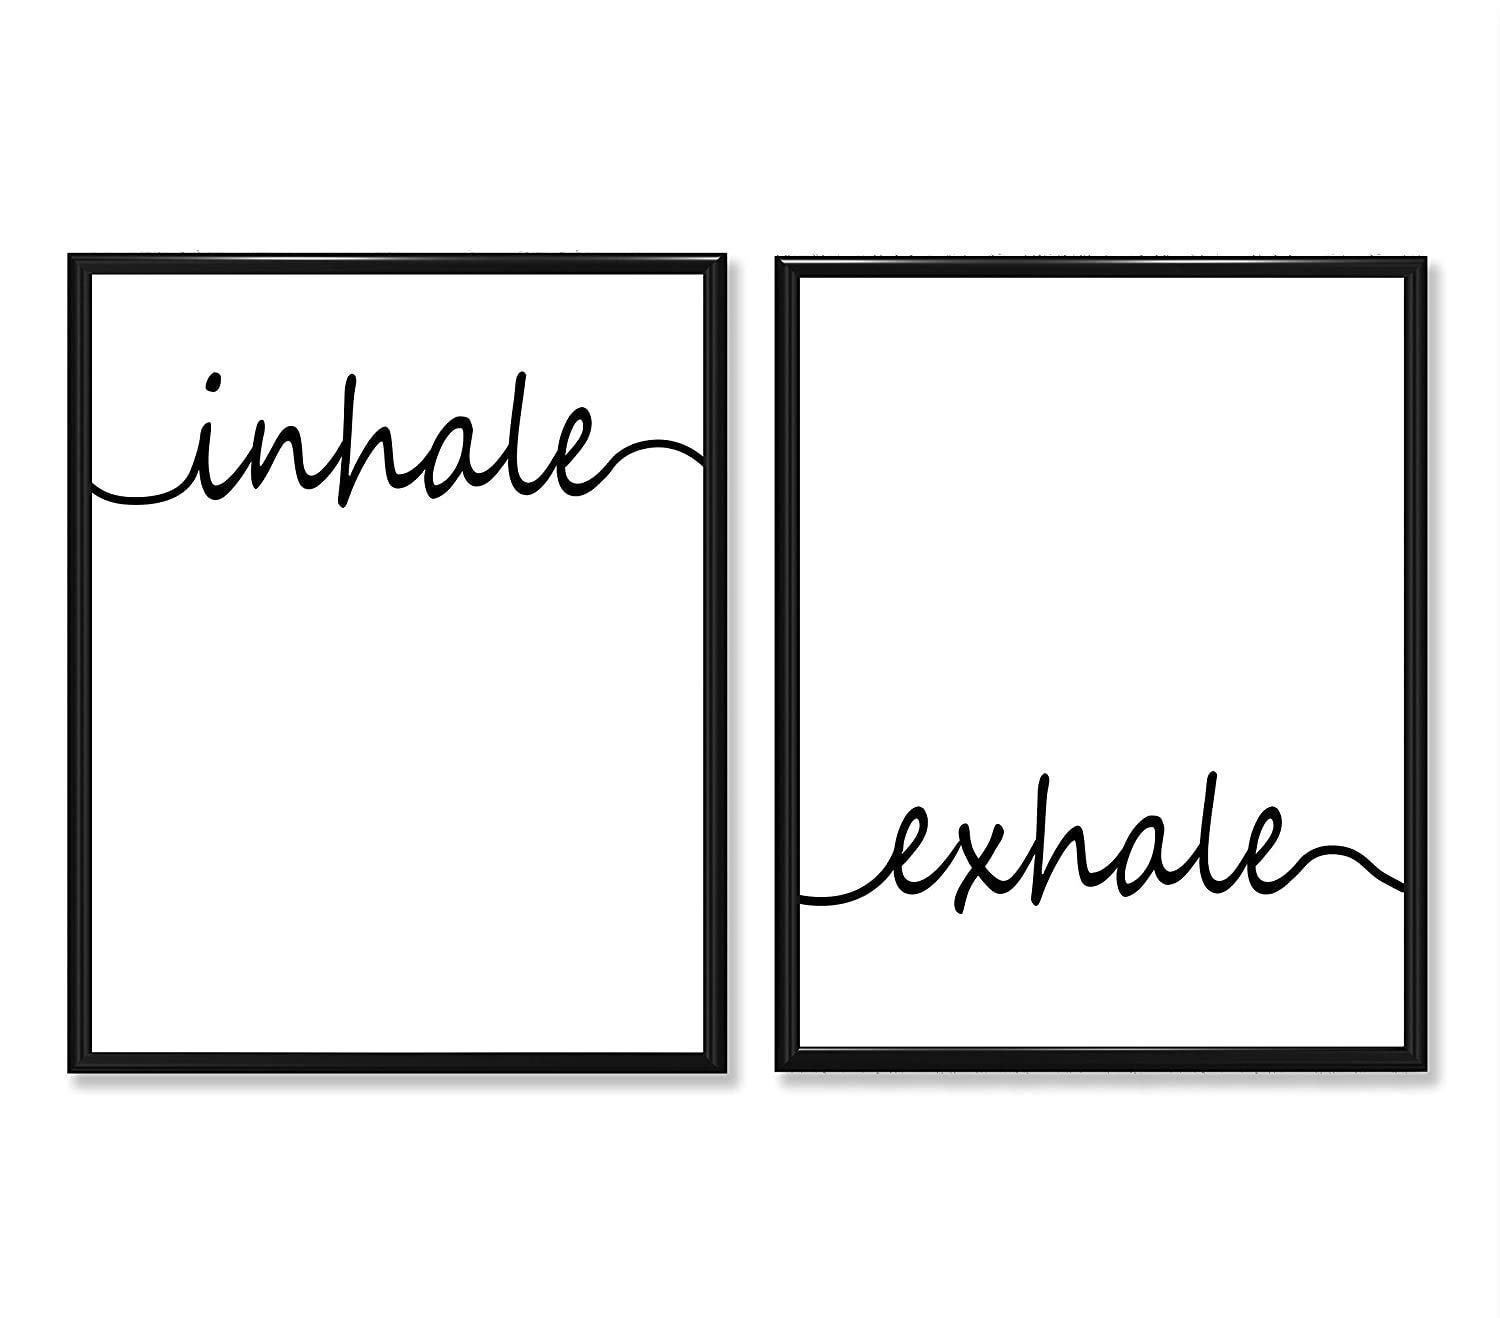 Inhale Exhale - Max shopping 63% OFF Set of Two and Black White Prints Unframed 11x14